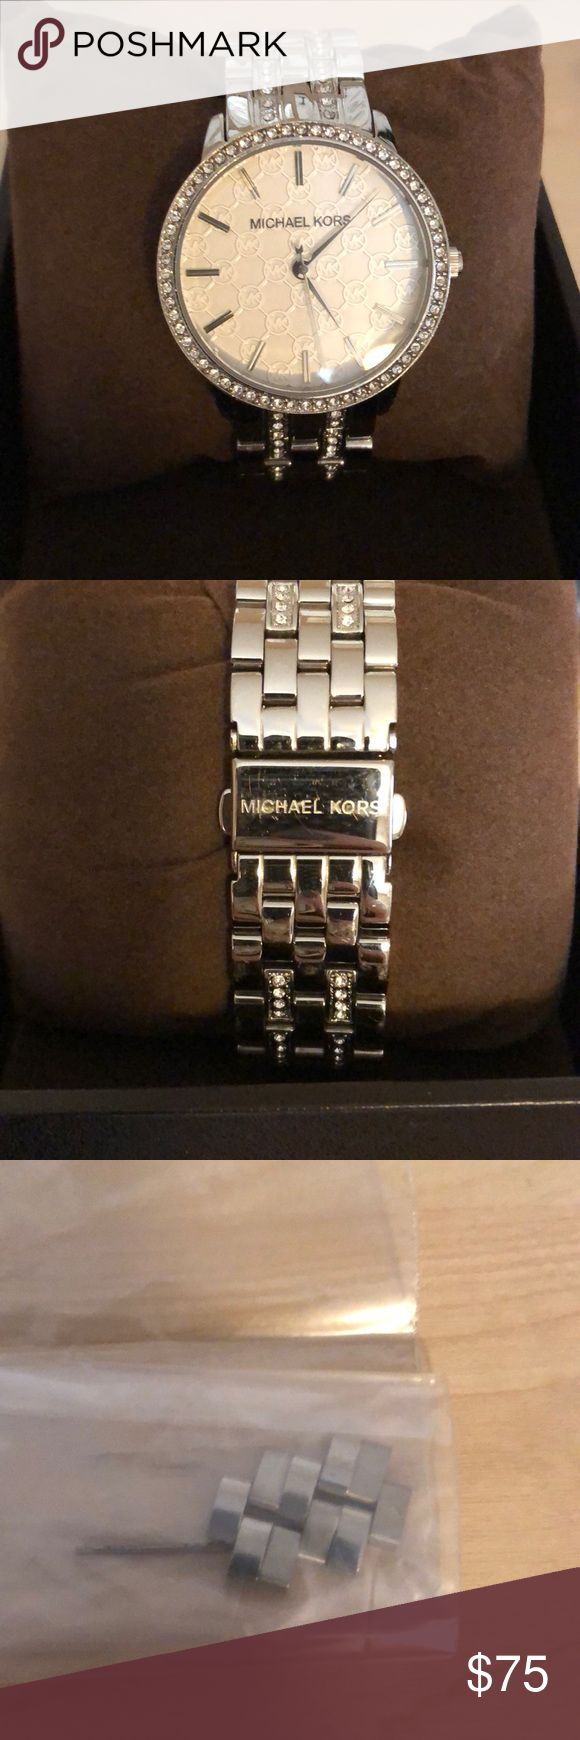 Authentic Michael Kors Watch Silver tone women's Michael Kors watch. MK logo on the face, Pave around the face and throughout the band. Comes with original box and has extra links. Michael Kors Accessories Watches